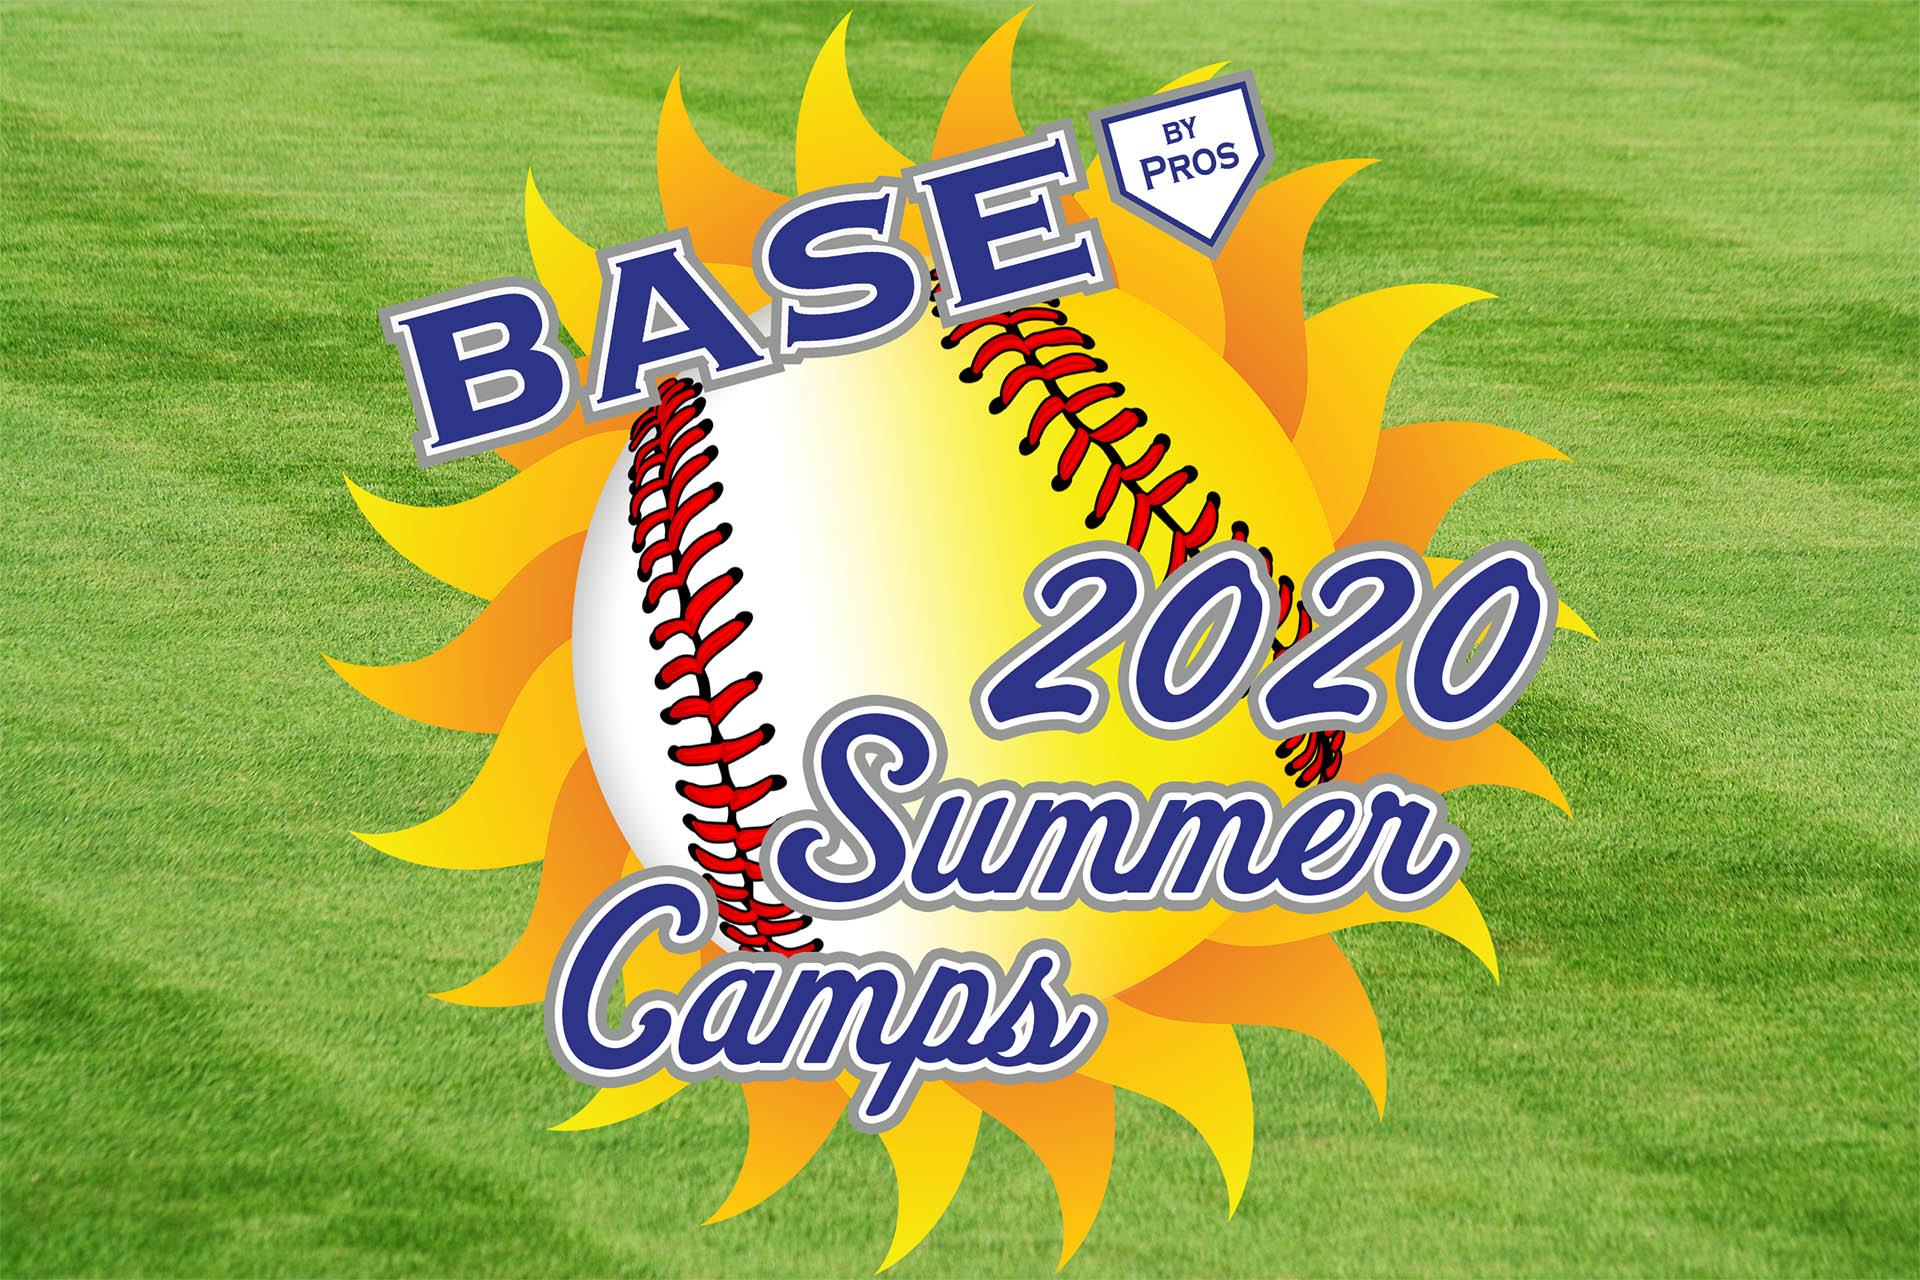 Summer Camps at BASE by Pros